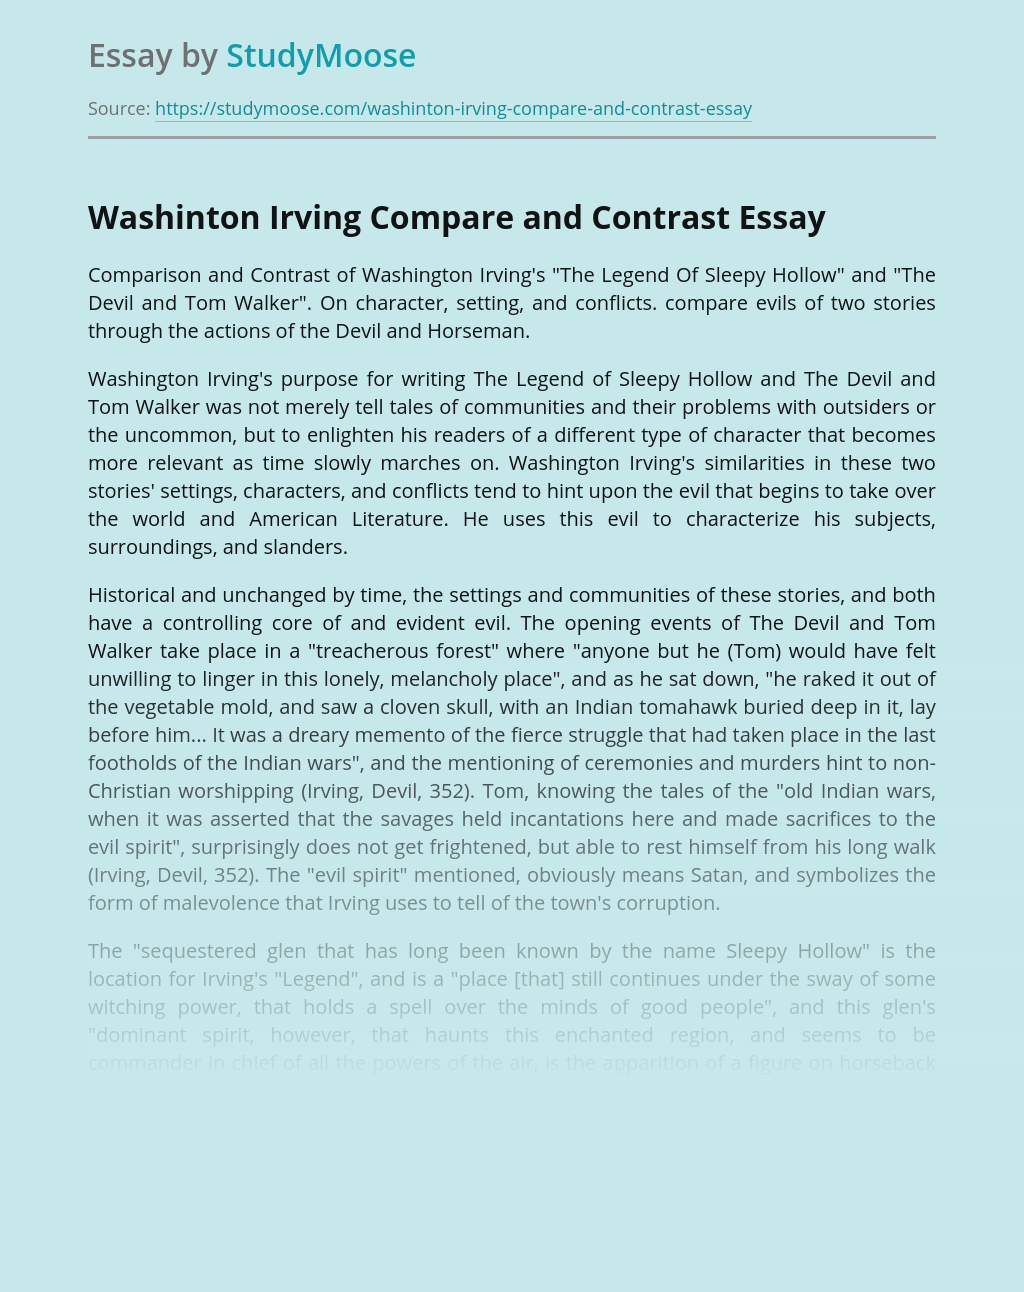 Washinton Irving Compare and Contrast